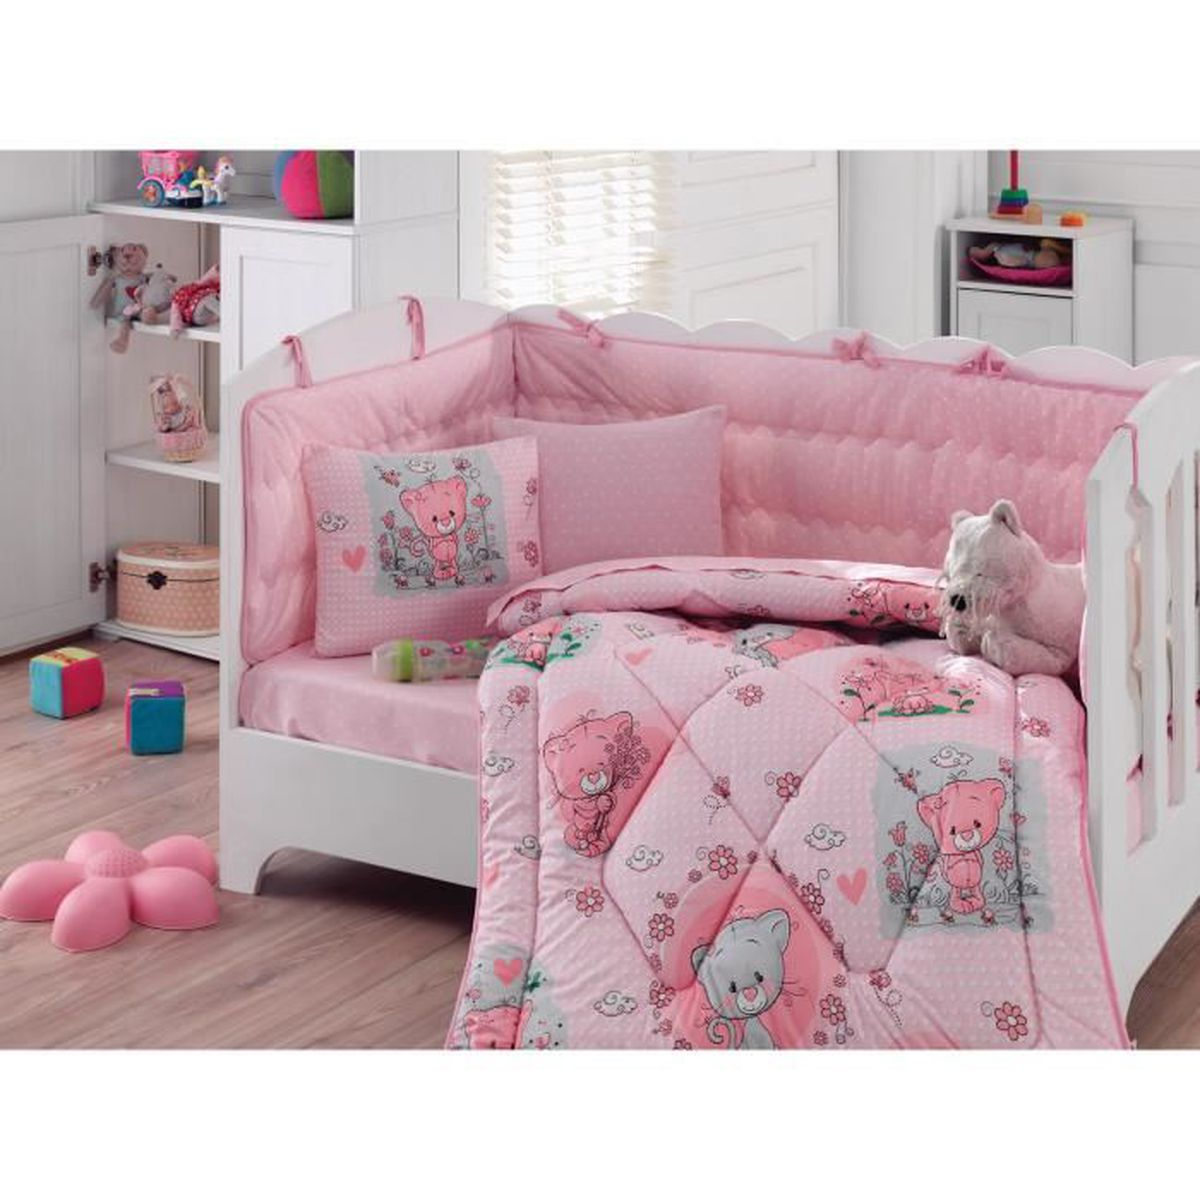 set de lit b b fille 6 pi ces 100 coton achat vente pack linge de lit cdiscount. Black Bedroom Furniture Sets. Home Design Ideas